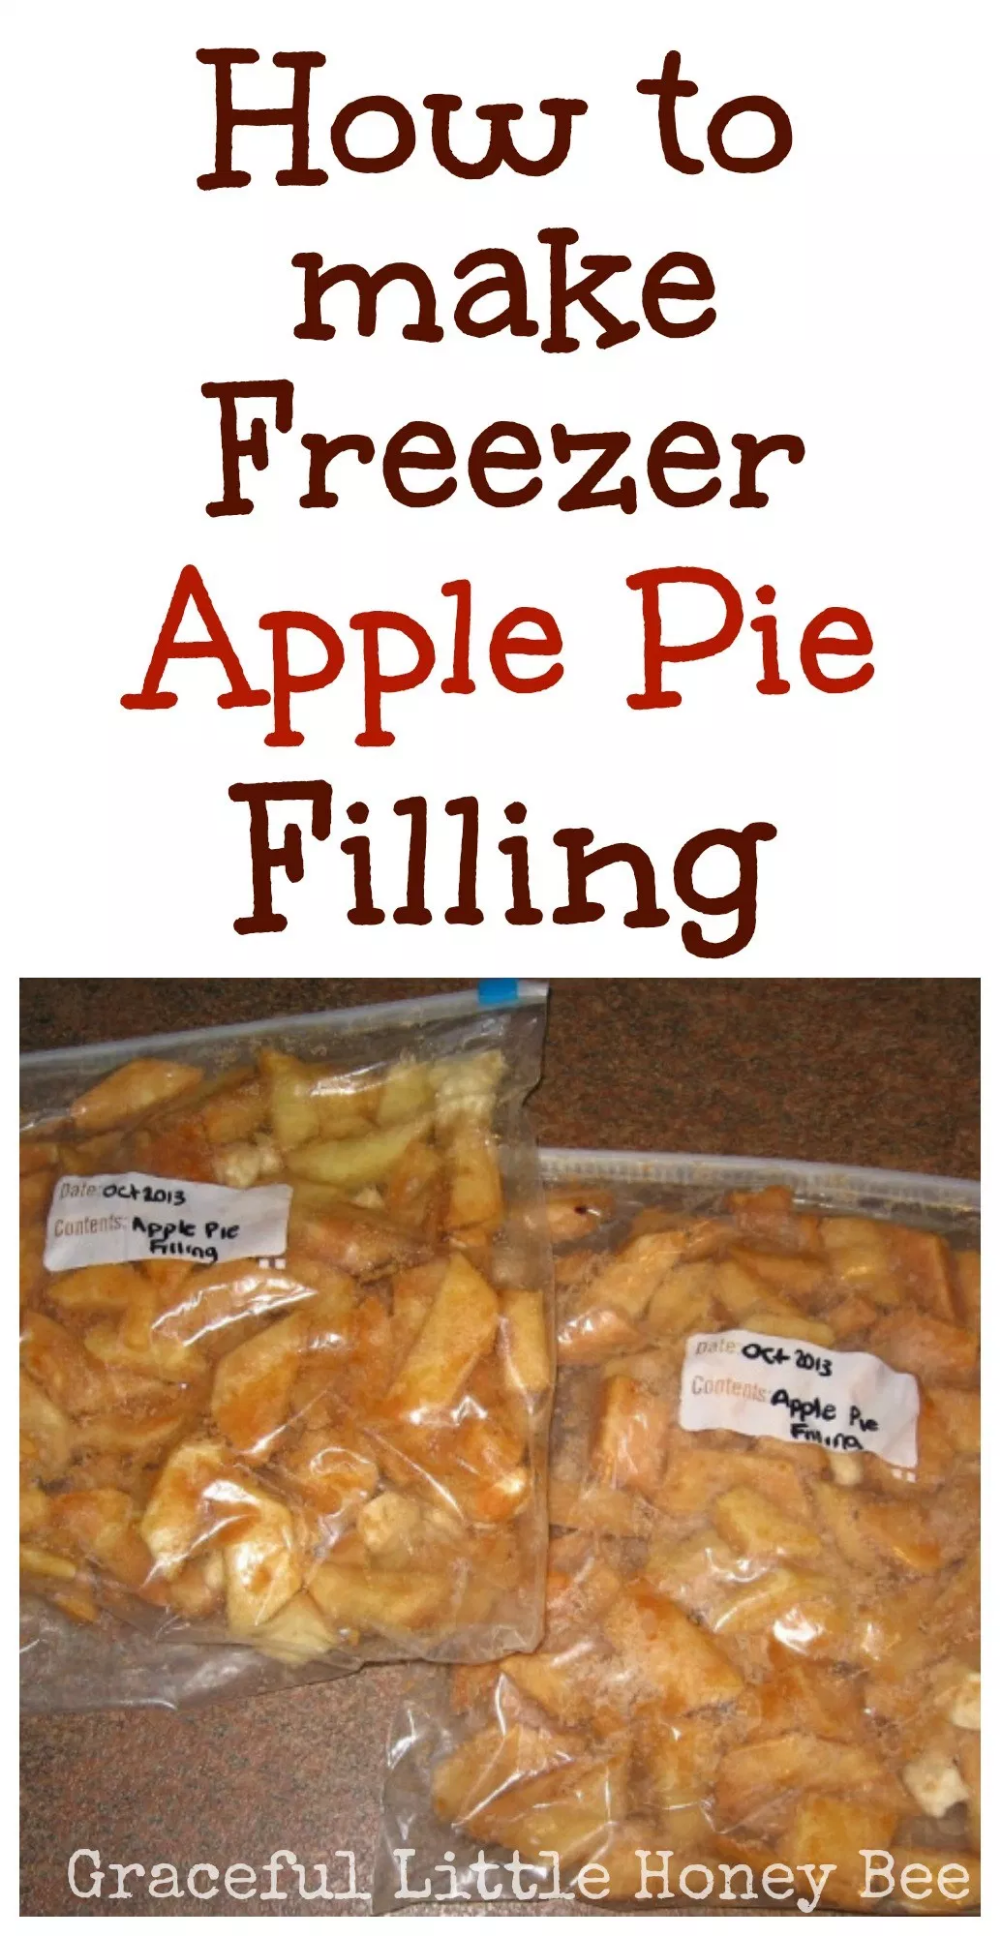 Freezer Apple Pie Filling + Video Tutorial #applepie